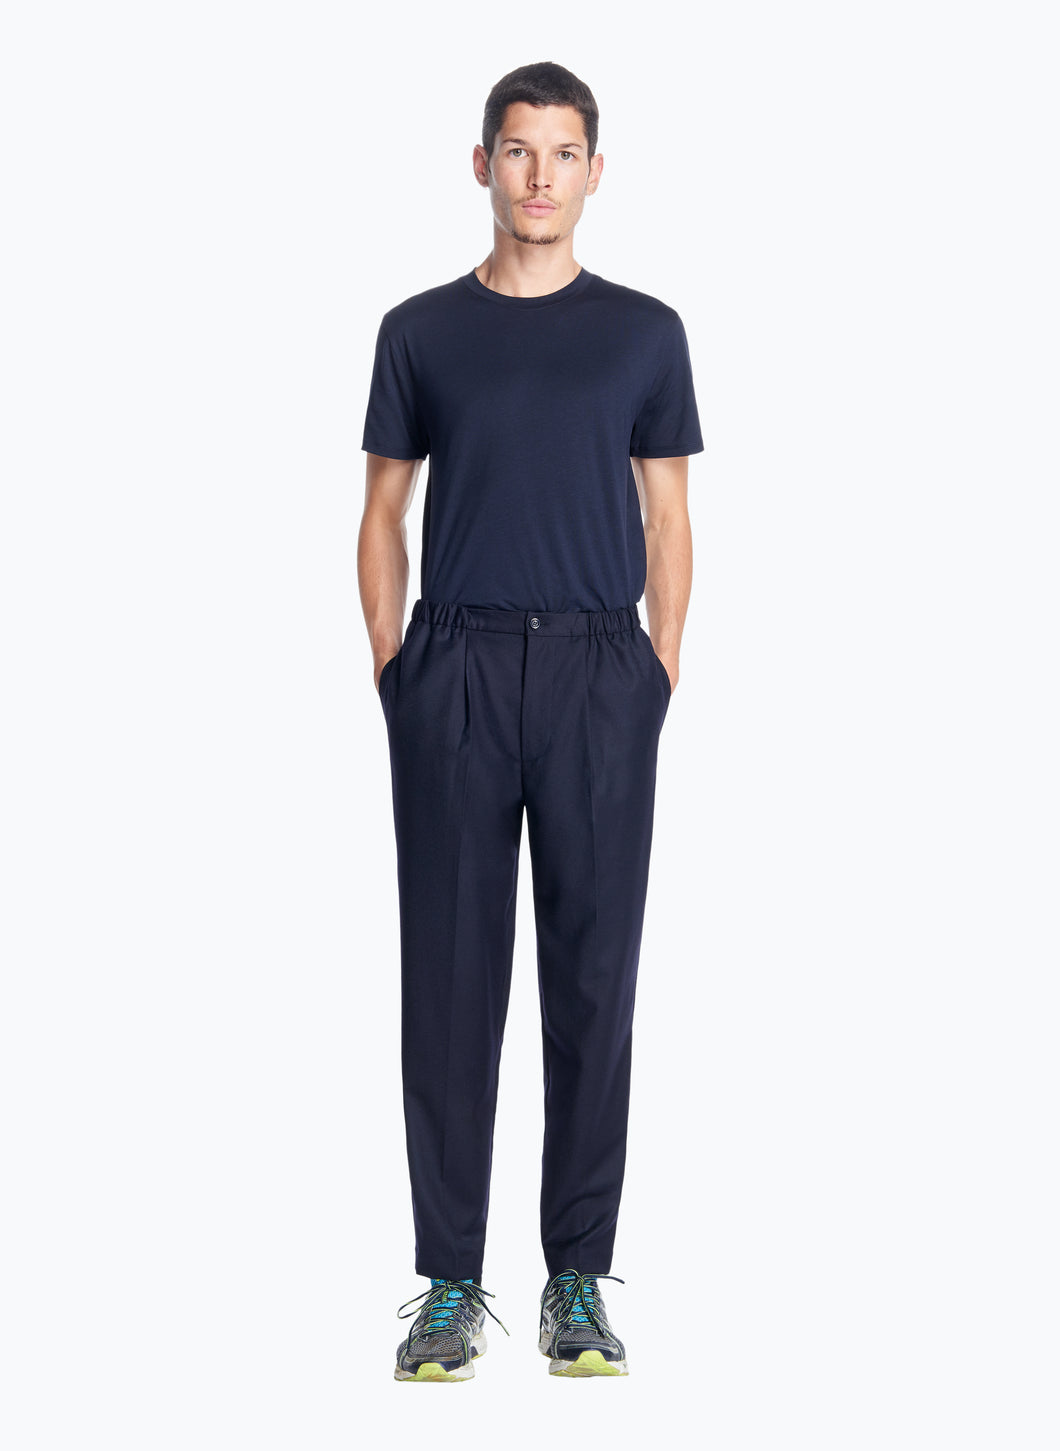 Pleated Pants with Elastic Sides in Navy Blue Flannel Wool